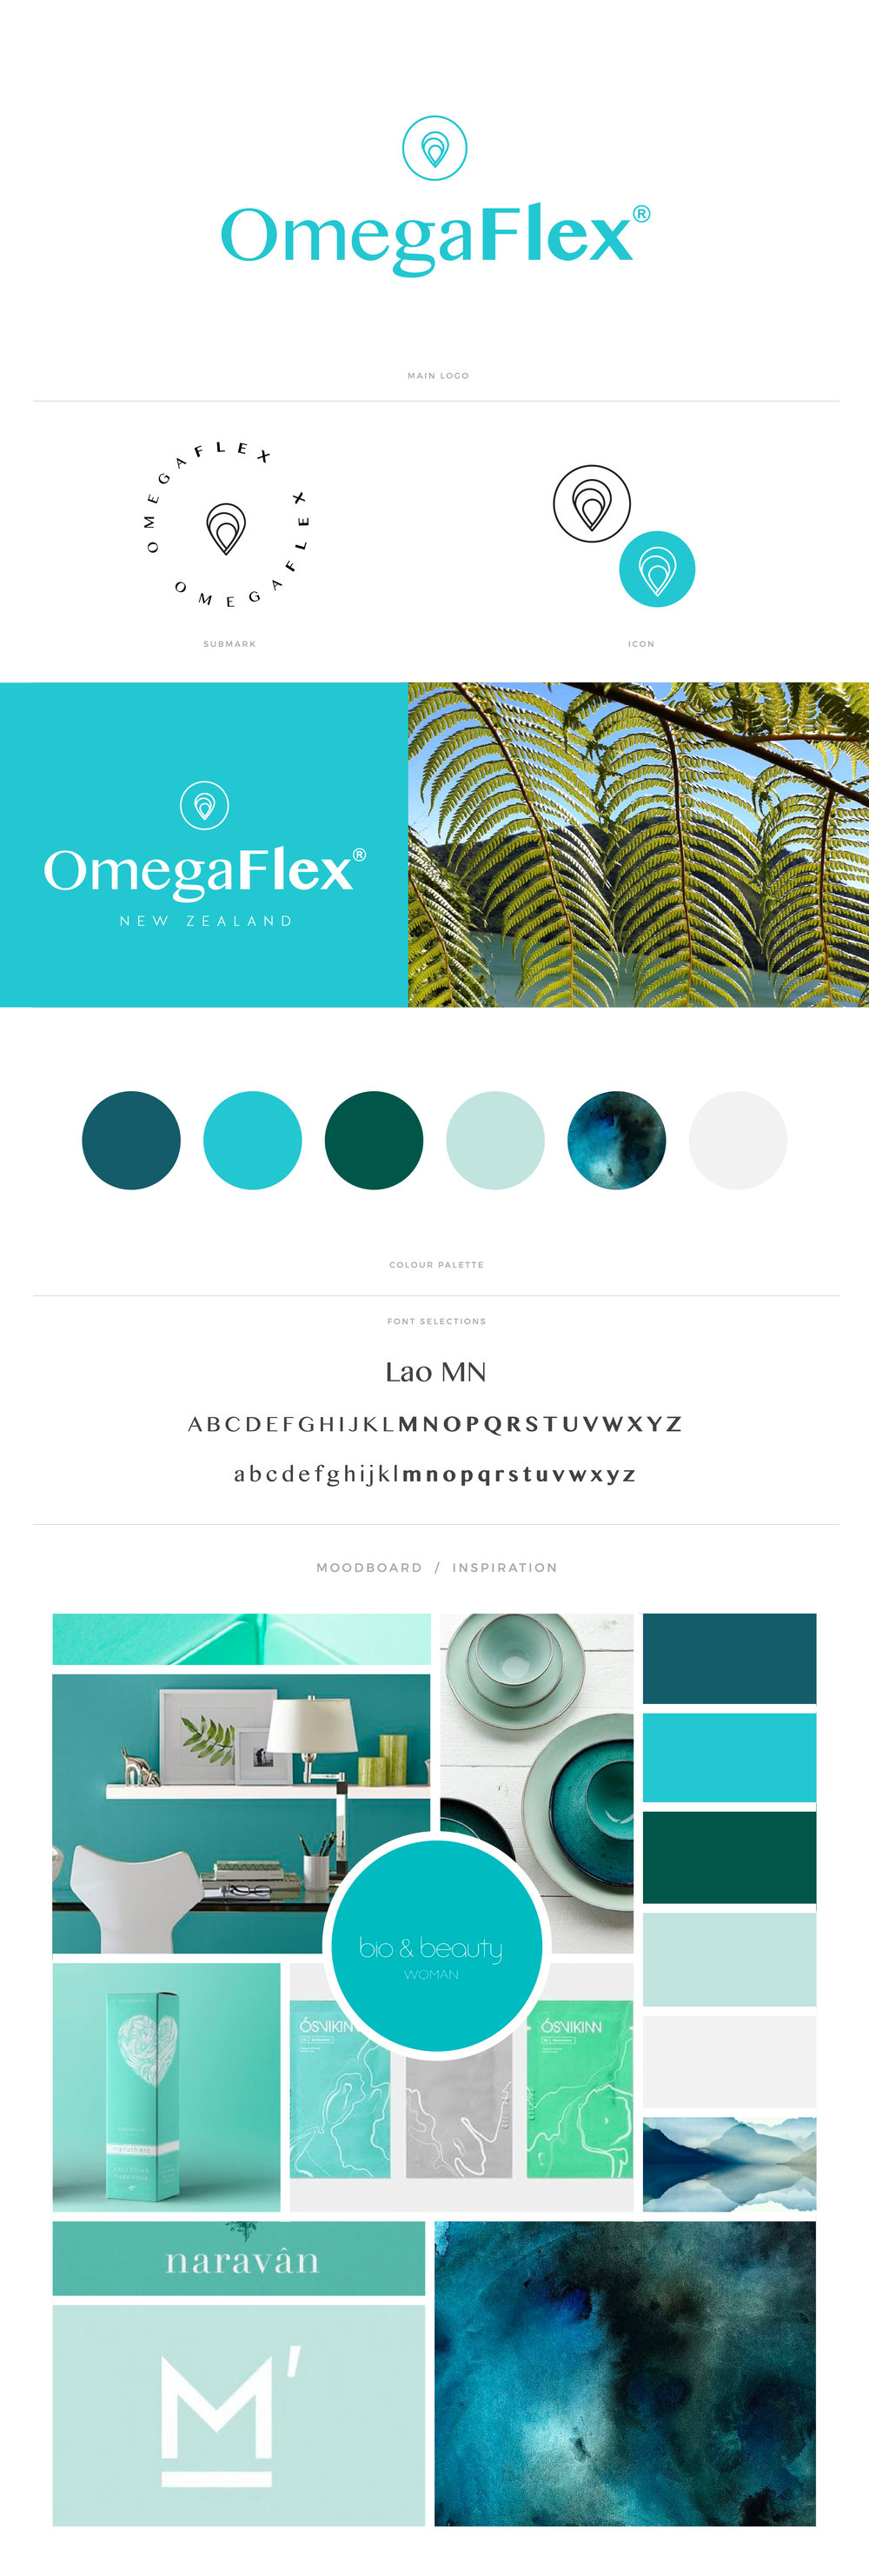 Omegaflex Brand Board - By January Made Design